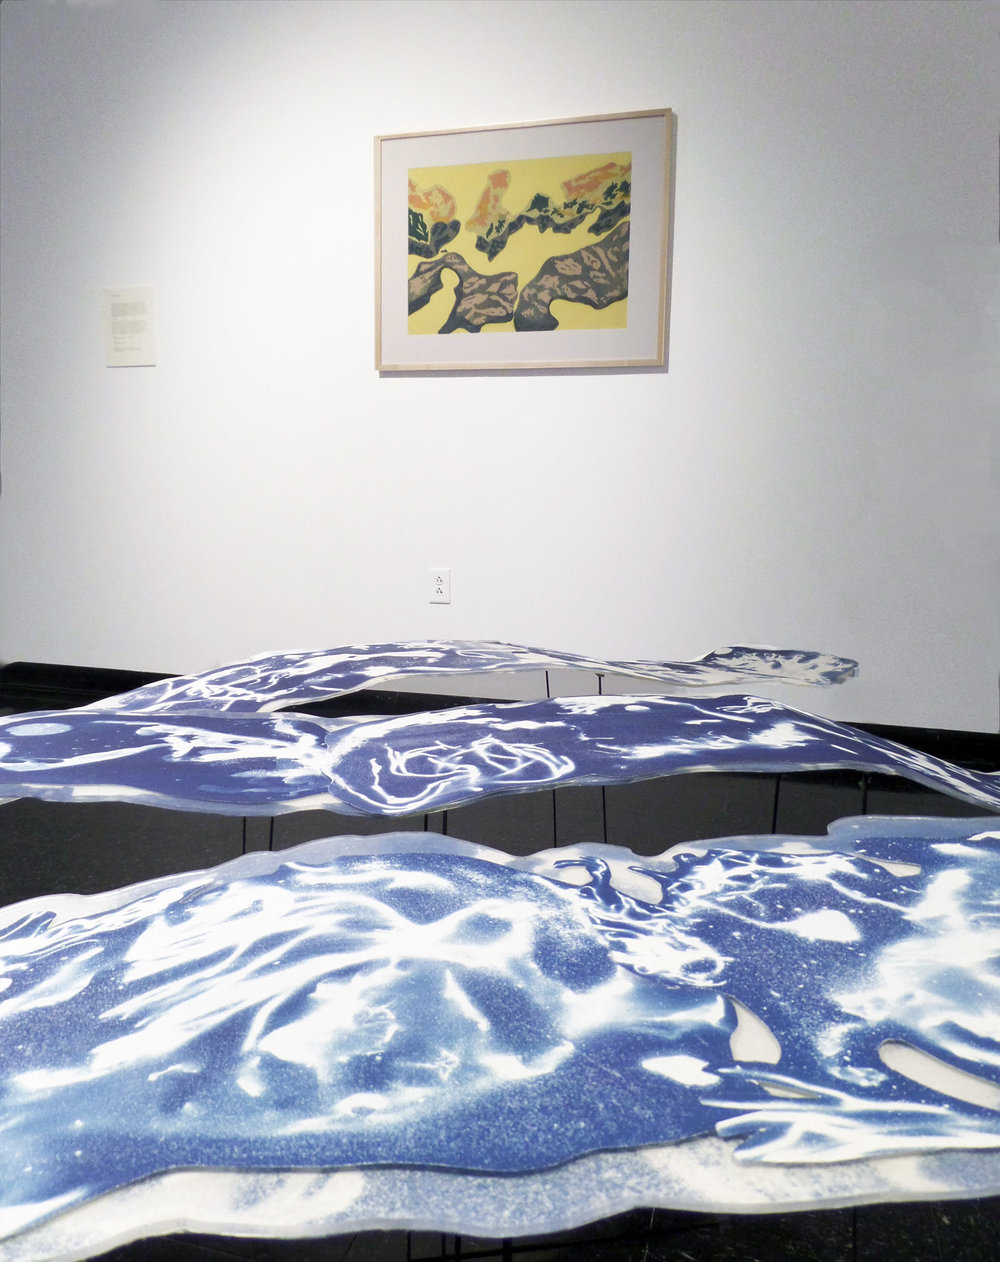 Thesis Exhibition, Cyanotype Sculptures + Screen Prints, CVPA UMass Dartmouth